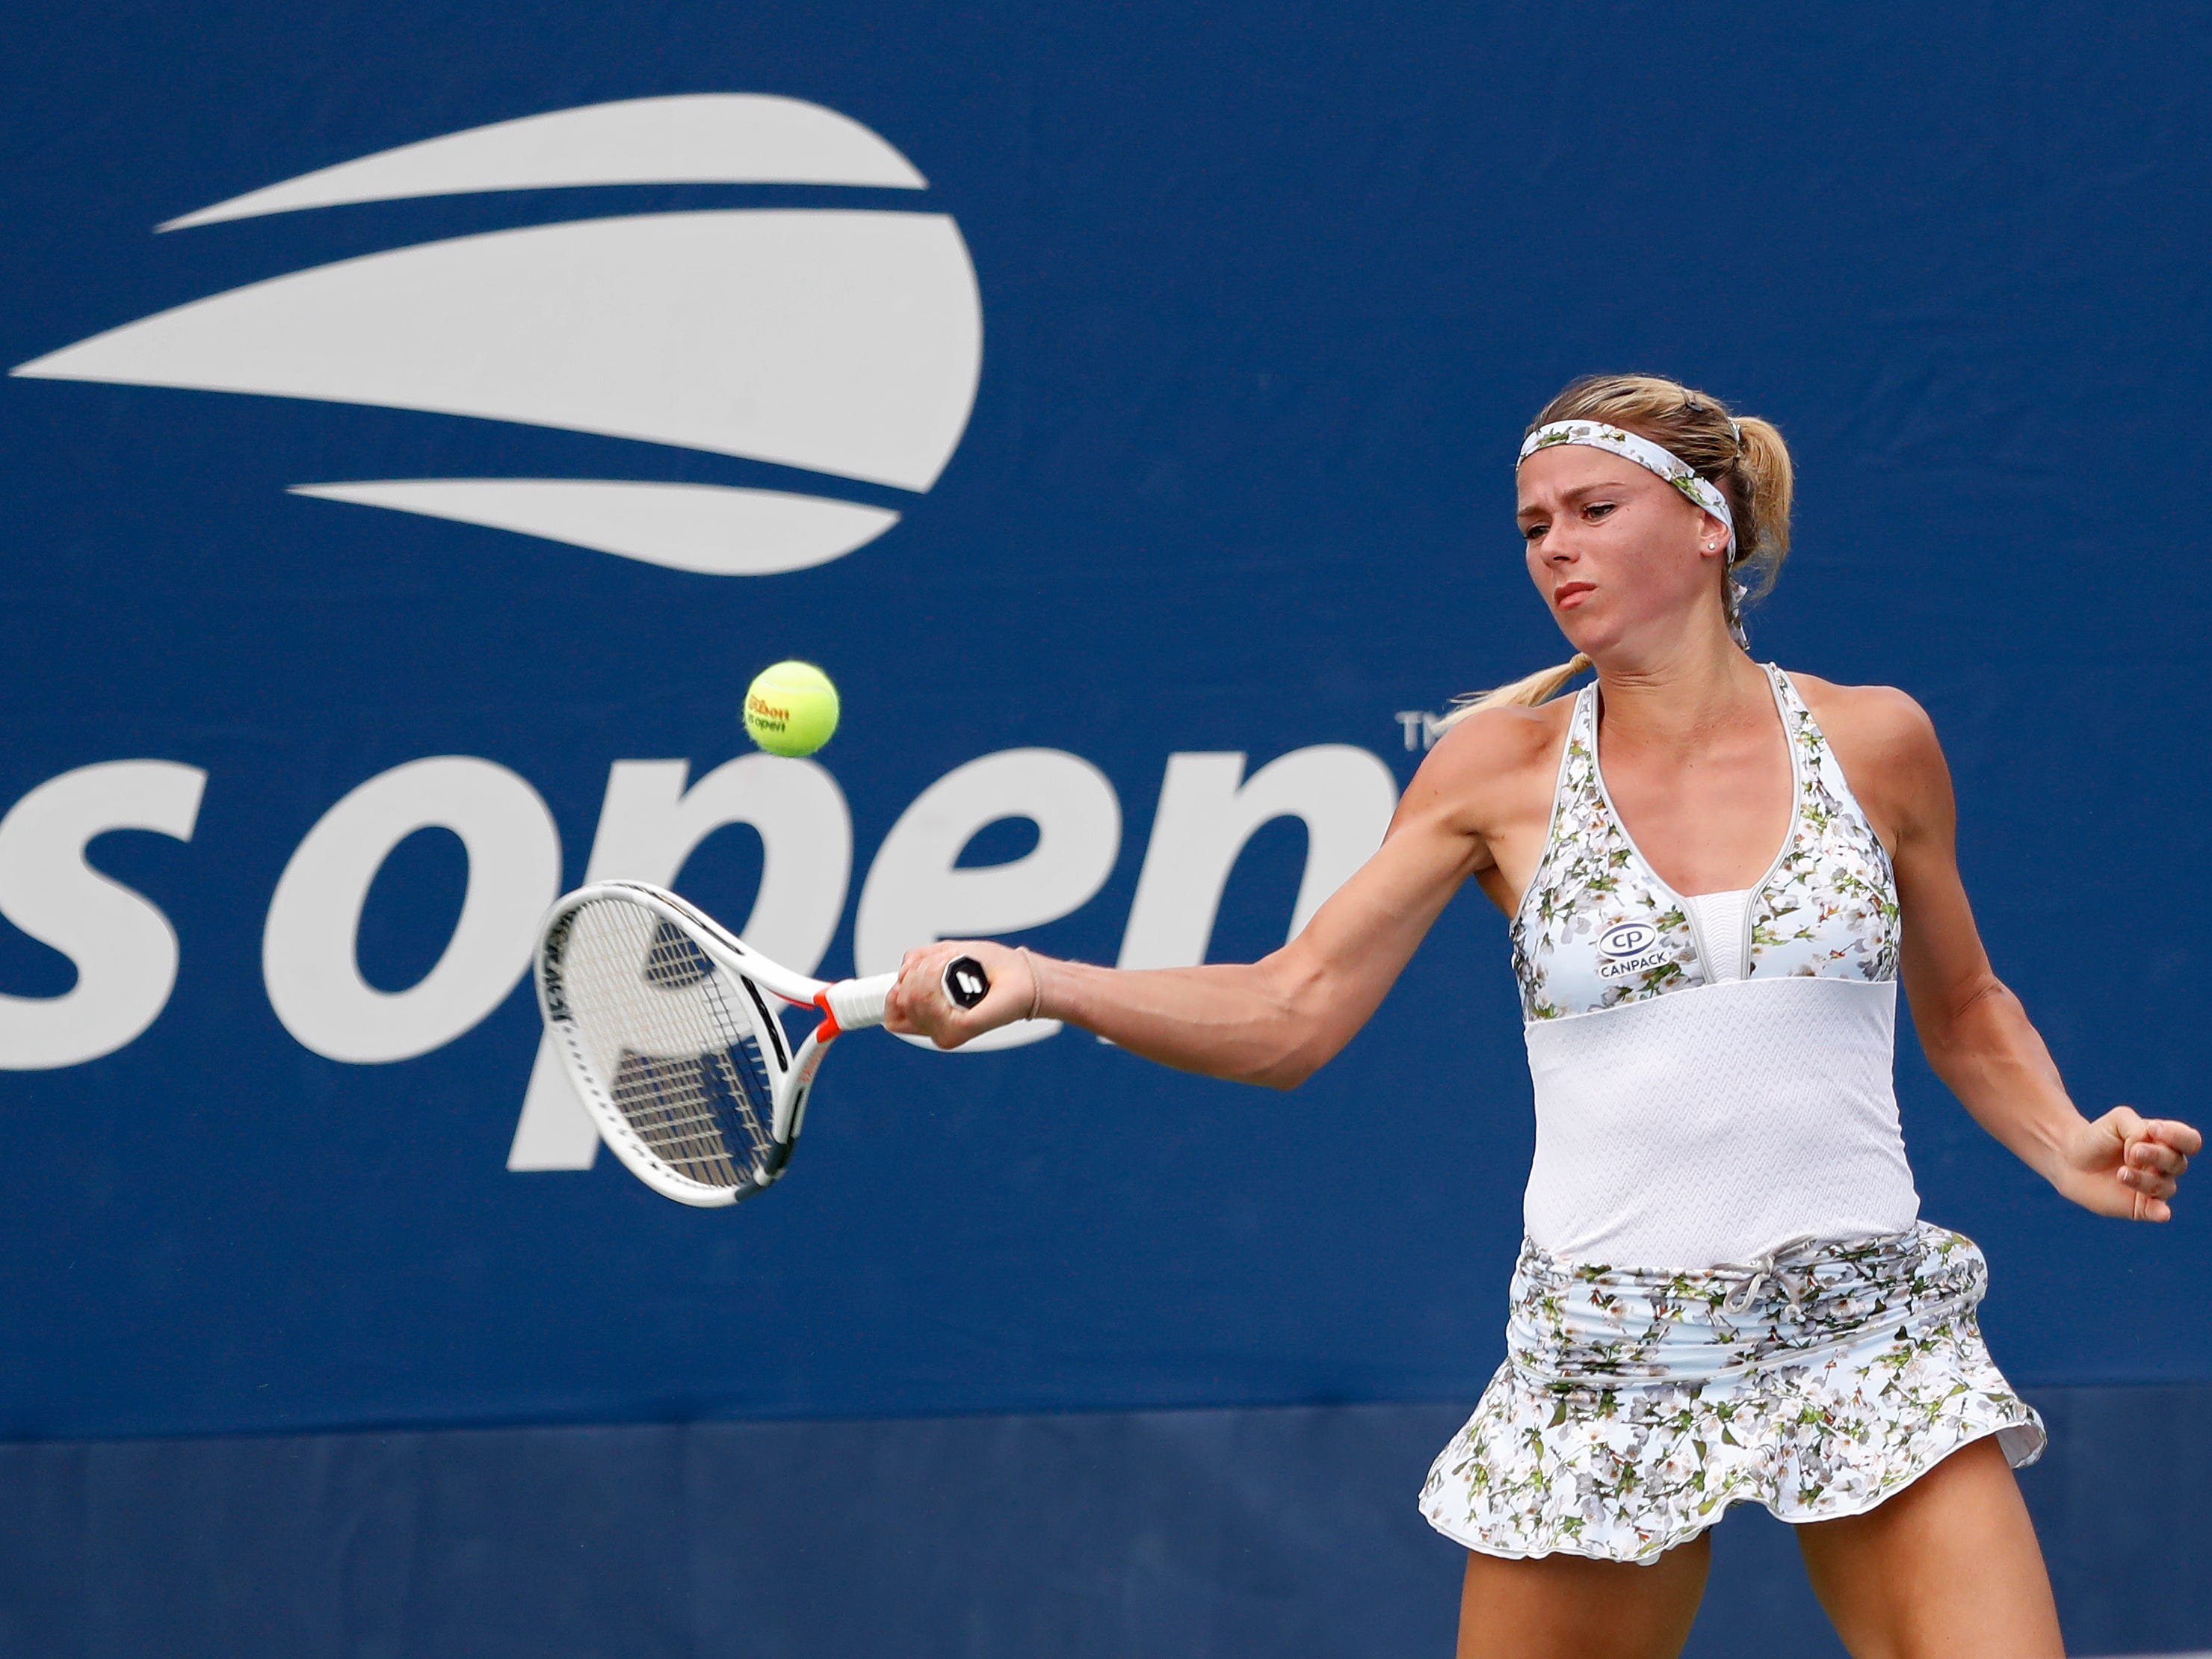 Camila Giorgi of Italy prepares for a forehand during her 6-4, 6-1 victory against Whitney Osuigwe of the USA.